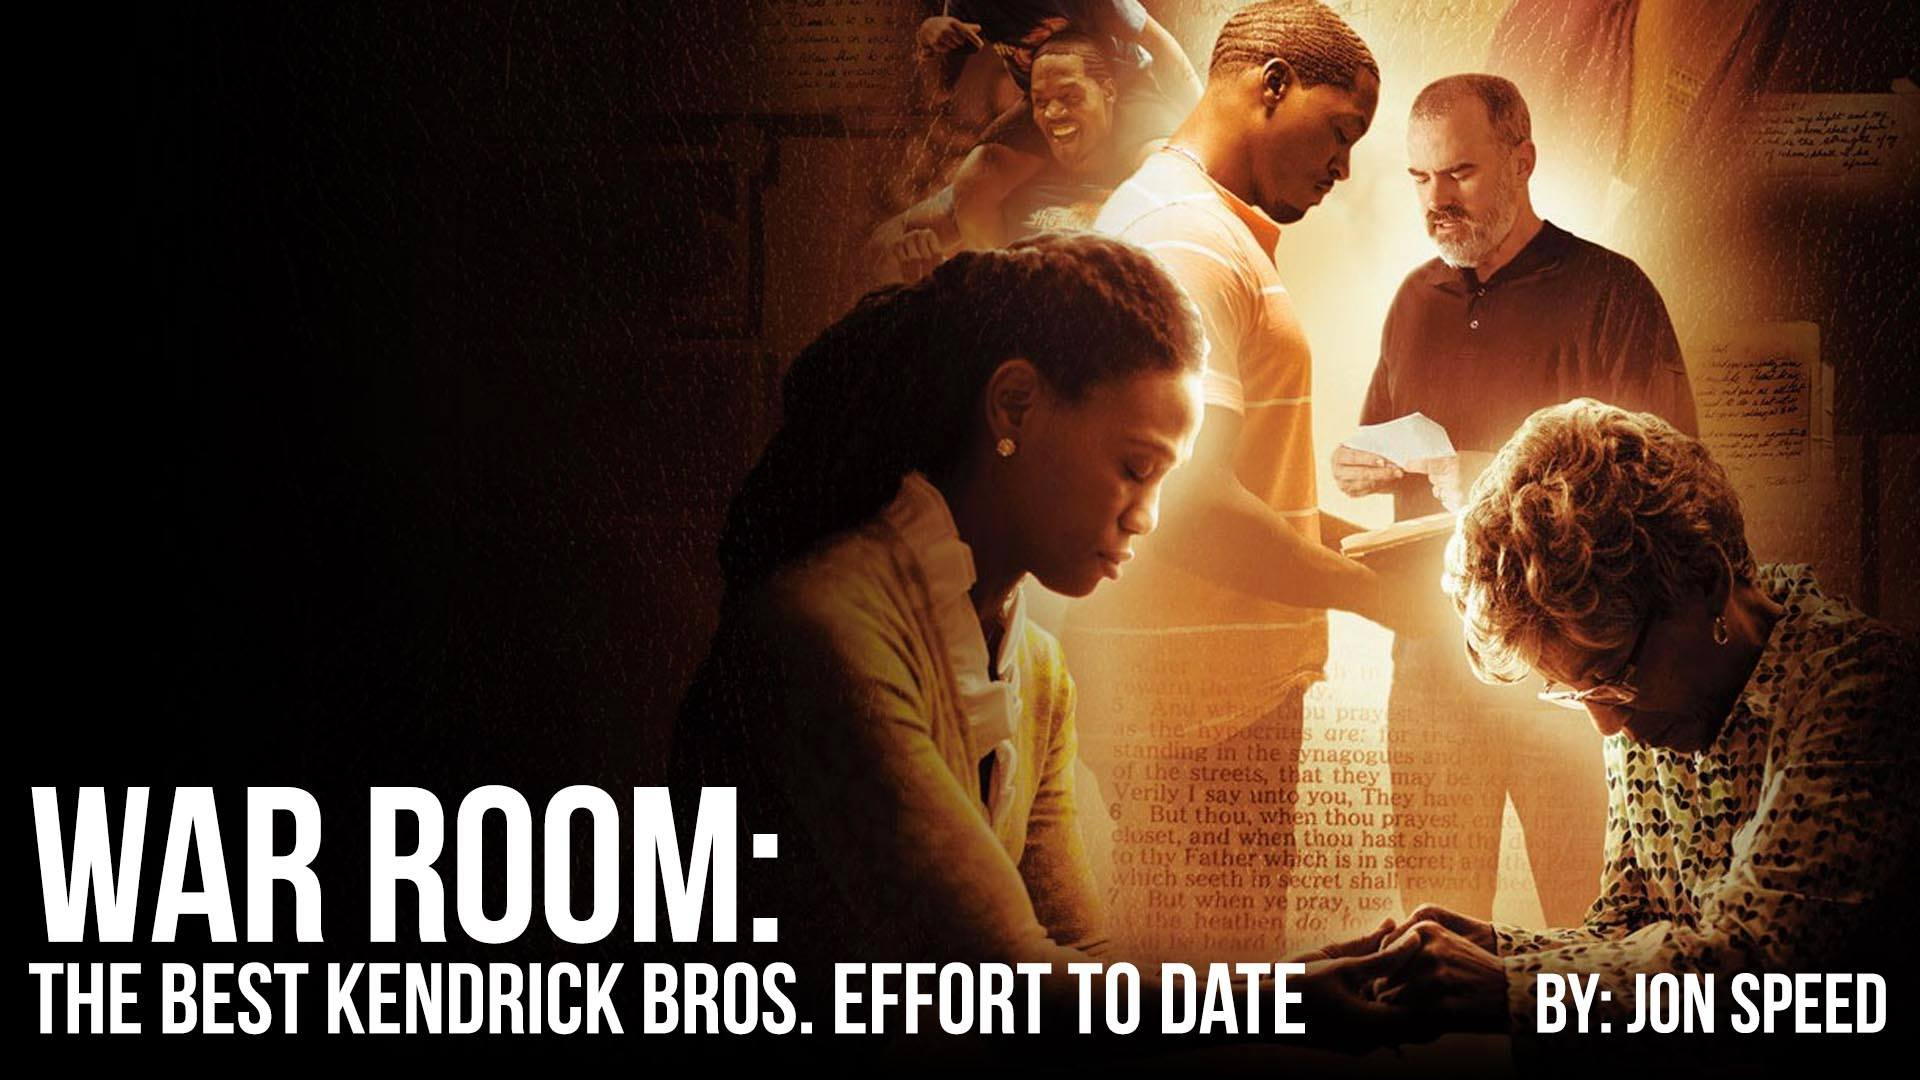 War Room: The Best Kendrick Bros. Effort To Date